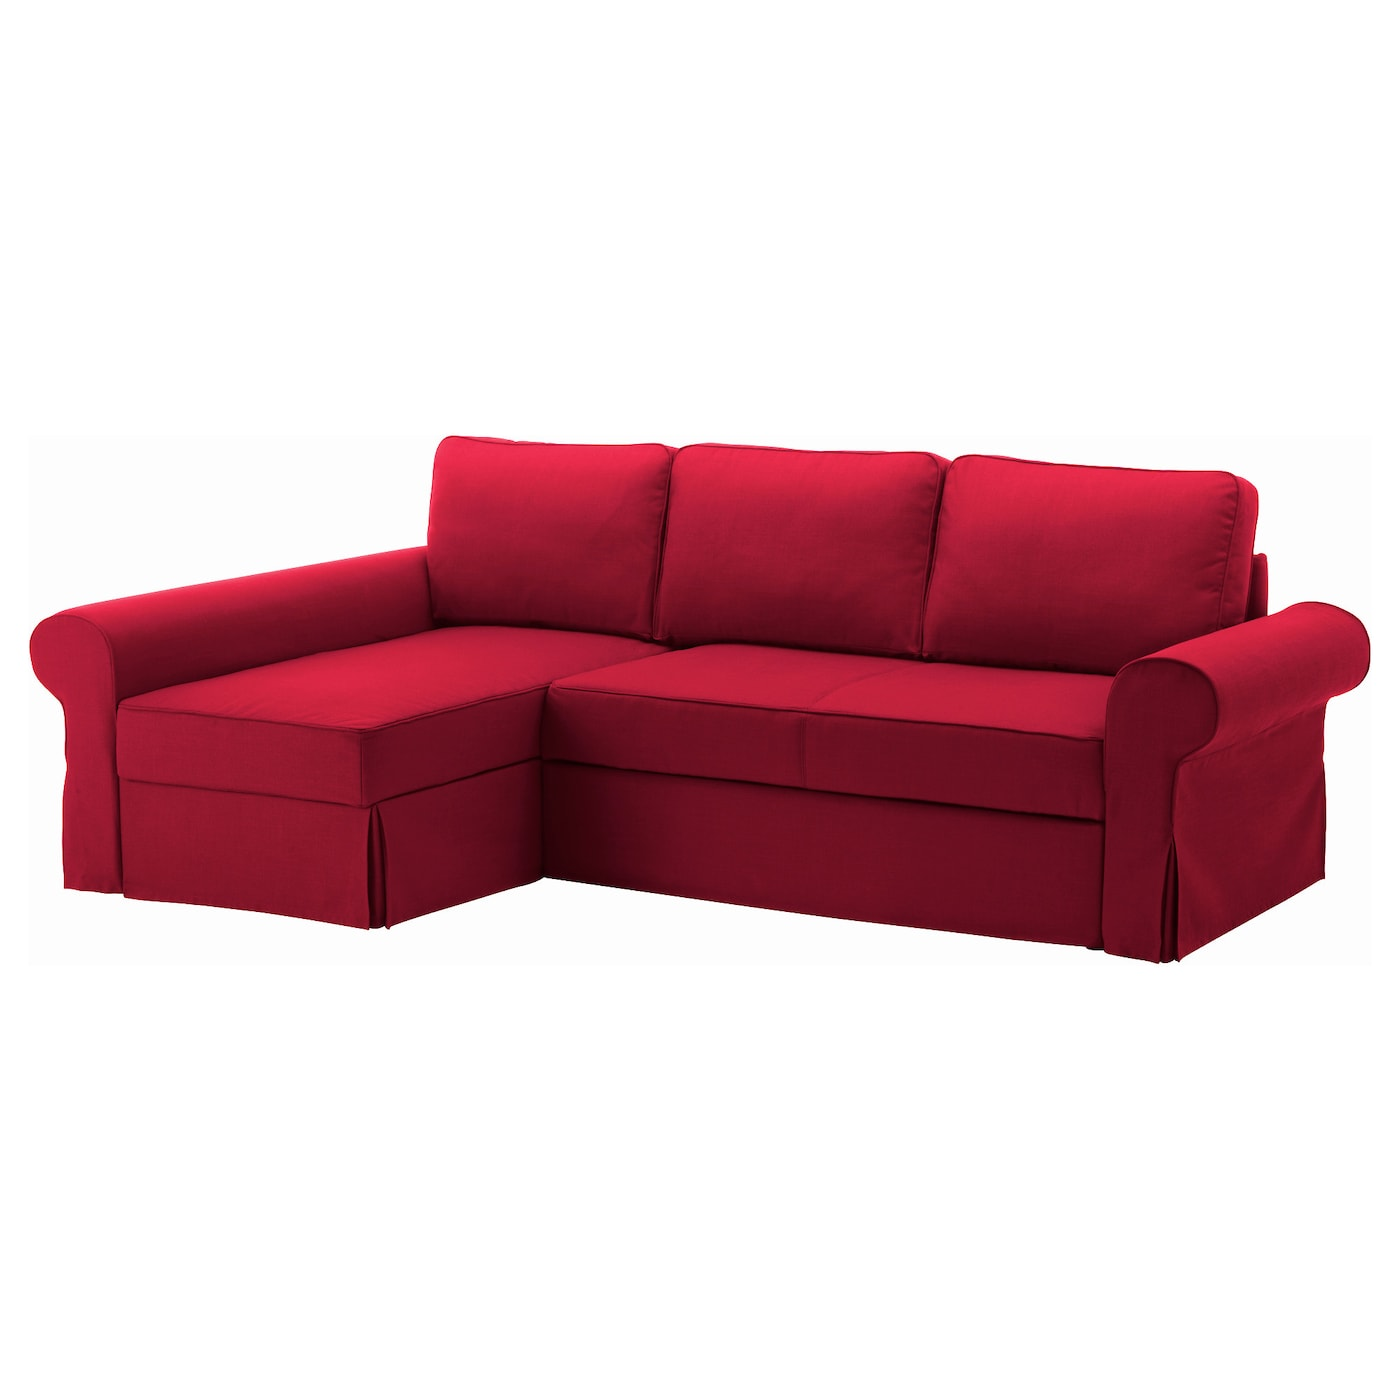 Backabro sofa bed with chaise longue nordvalla red ikea for Sofa cama 1 cuerpo